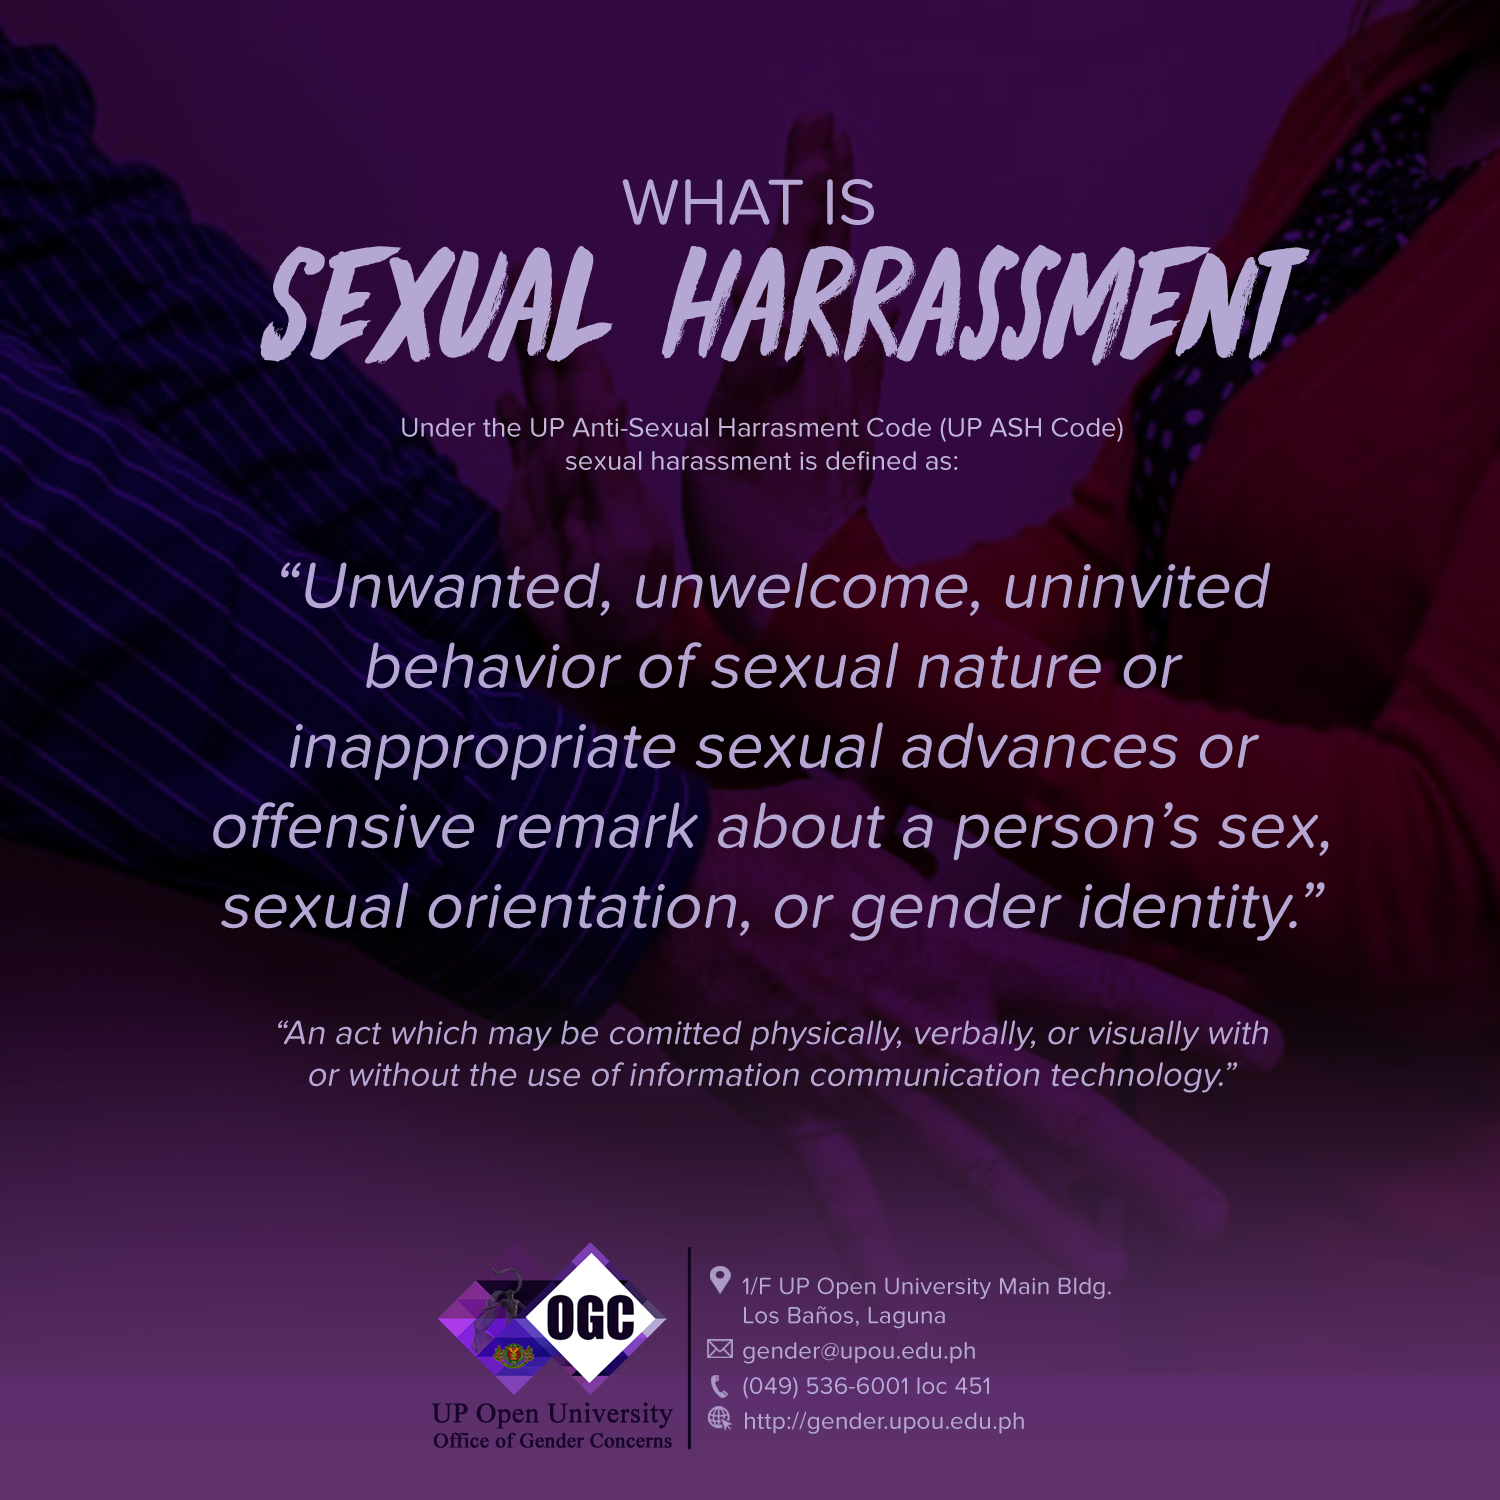 Harassment information sexual are certainly